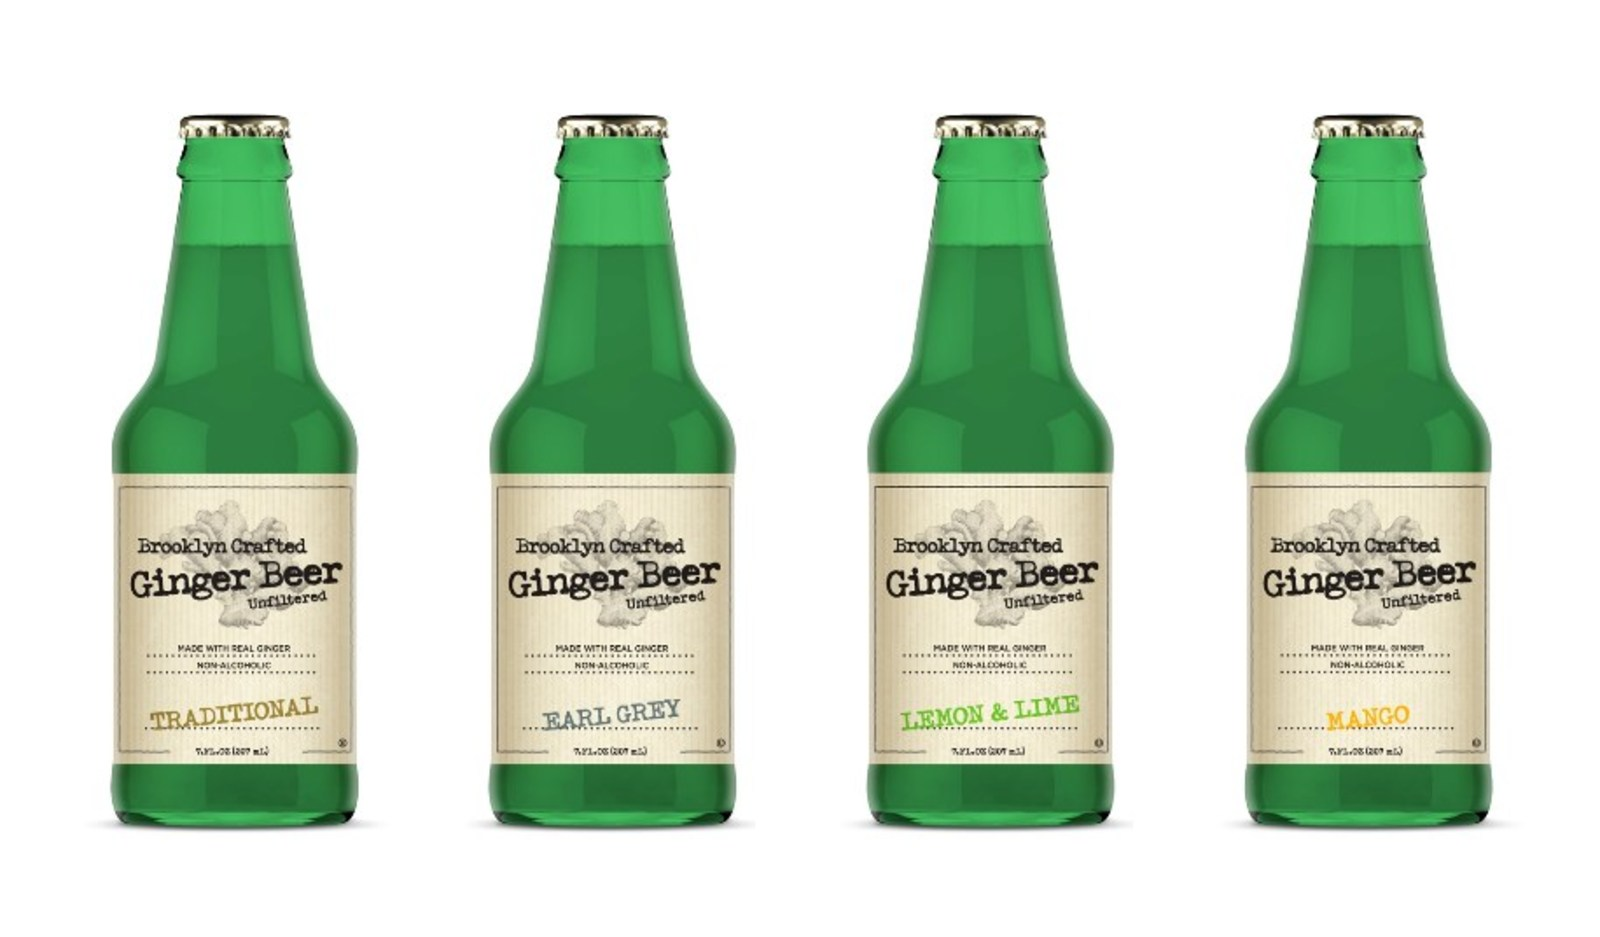 Brooklyn Crafted launches new line of craft ginger beers in US